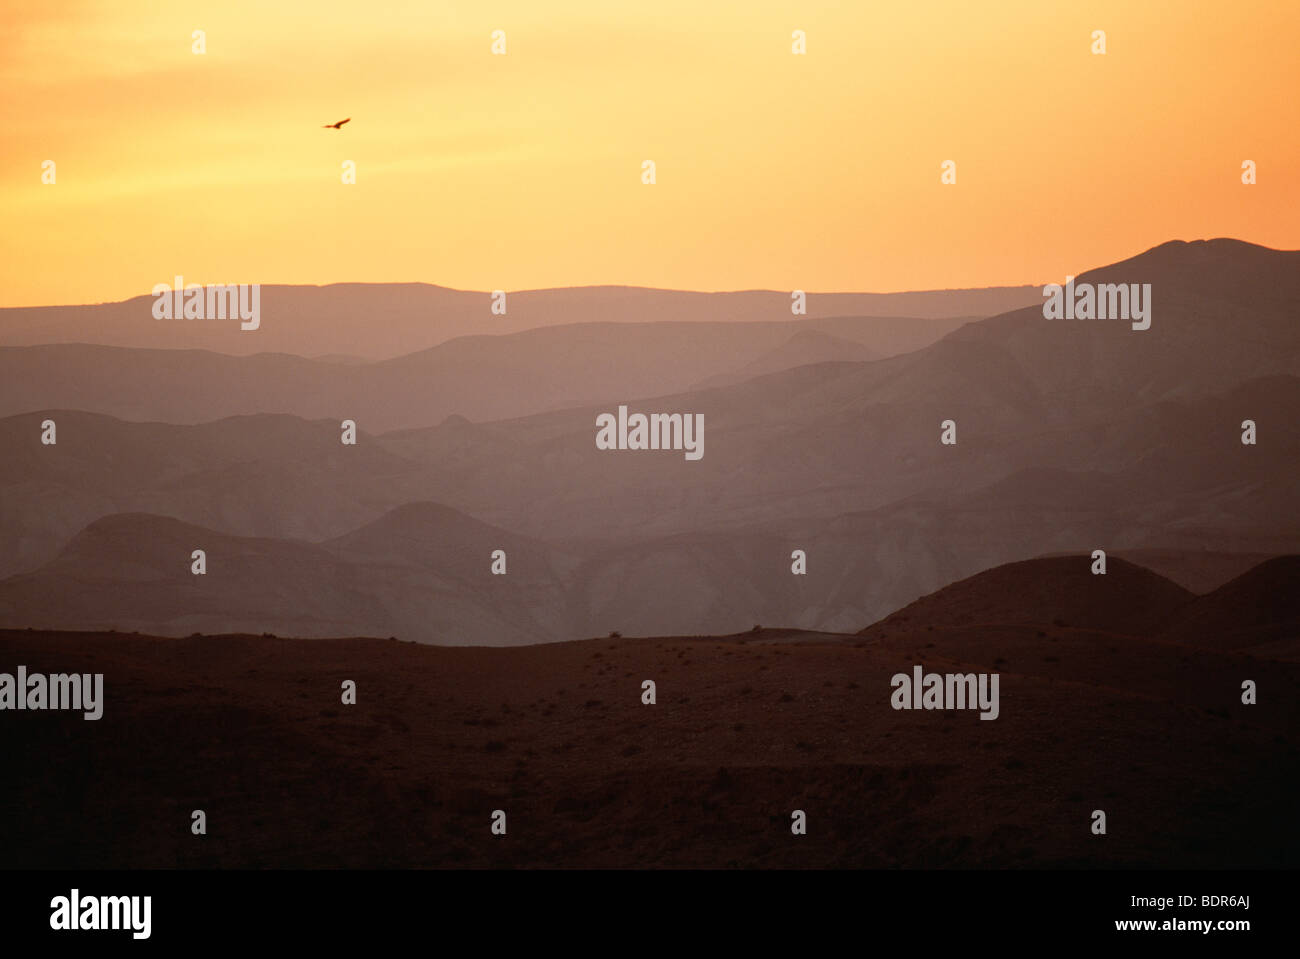 Bird flying over desert landscape Israel. - Stock Image